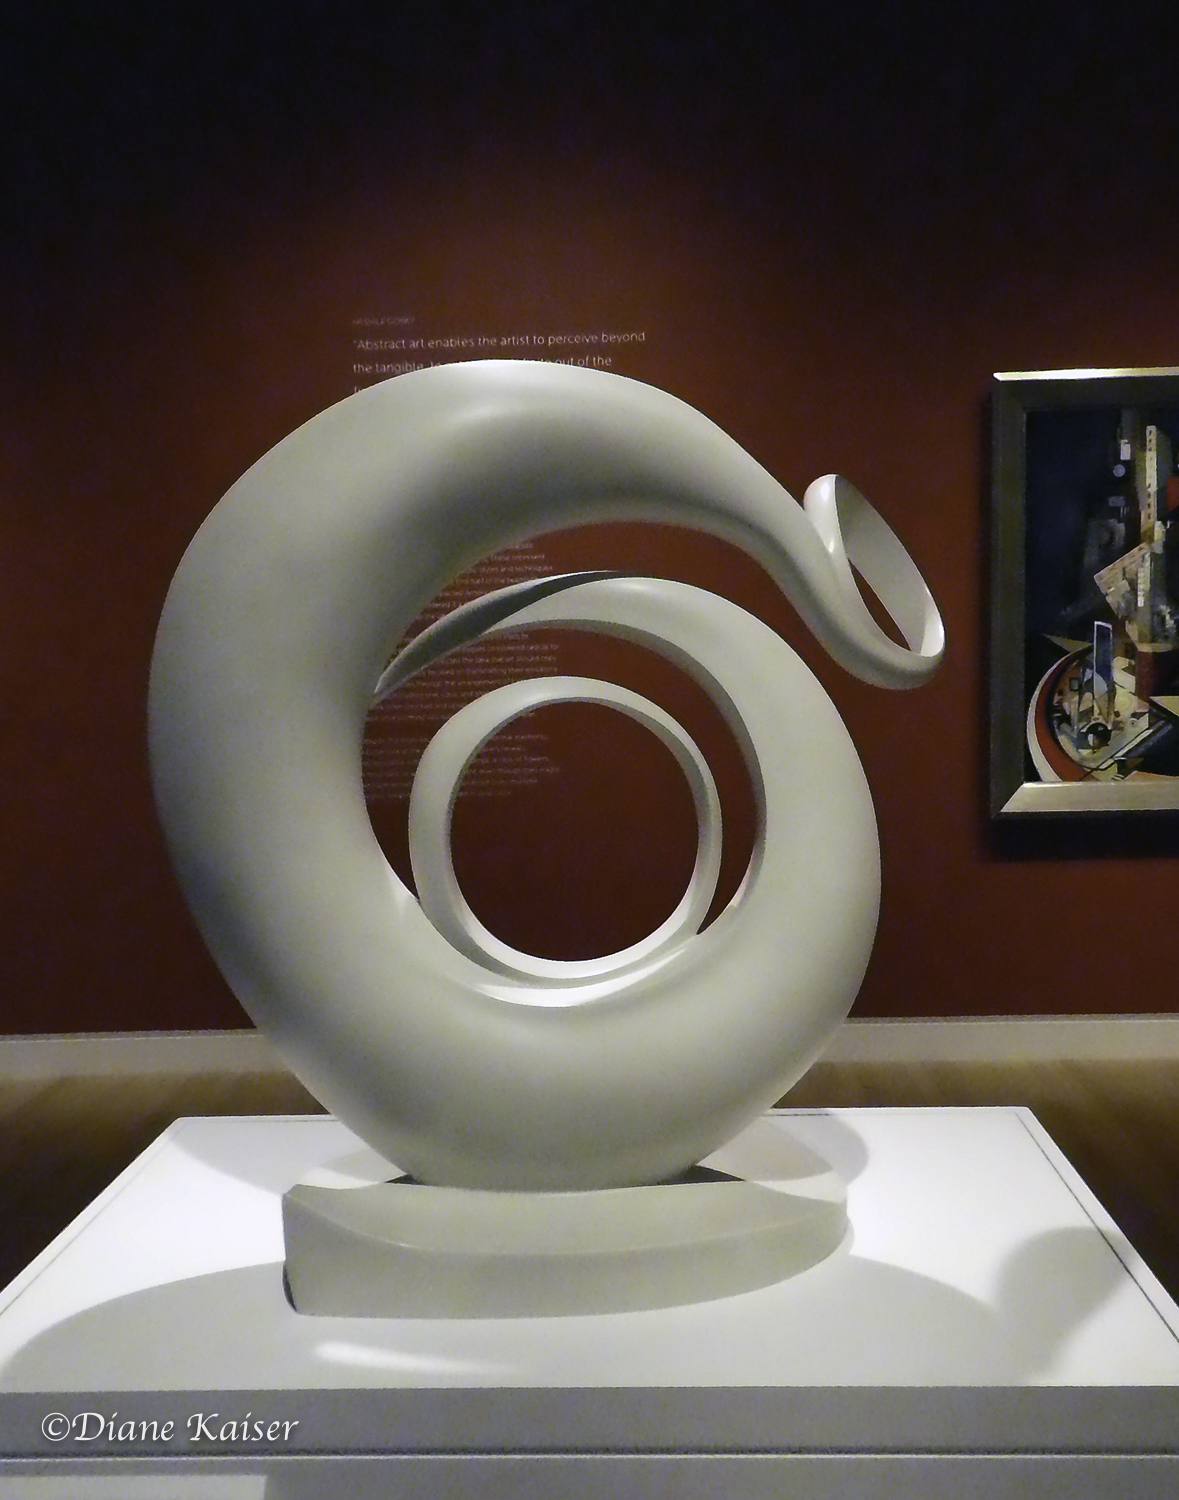 Abstraction, by Georgia O'Keefe (1887-1986).  It is made of white-lacquered bronze.